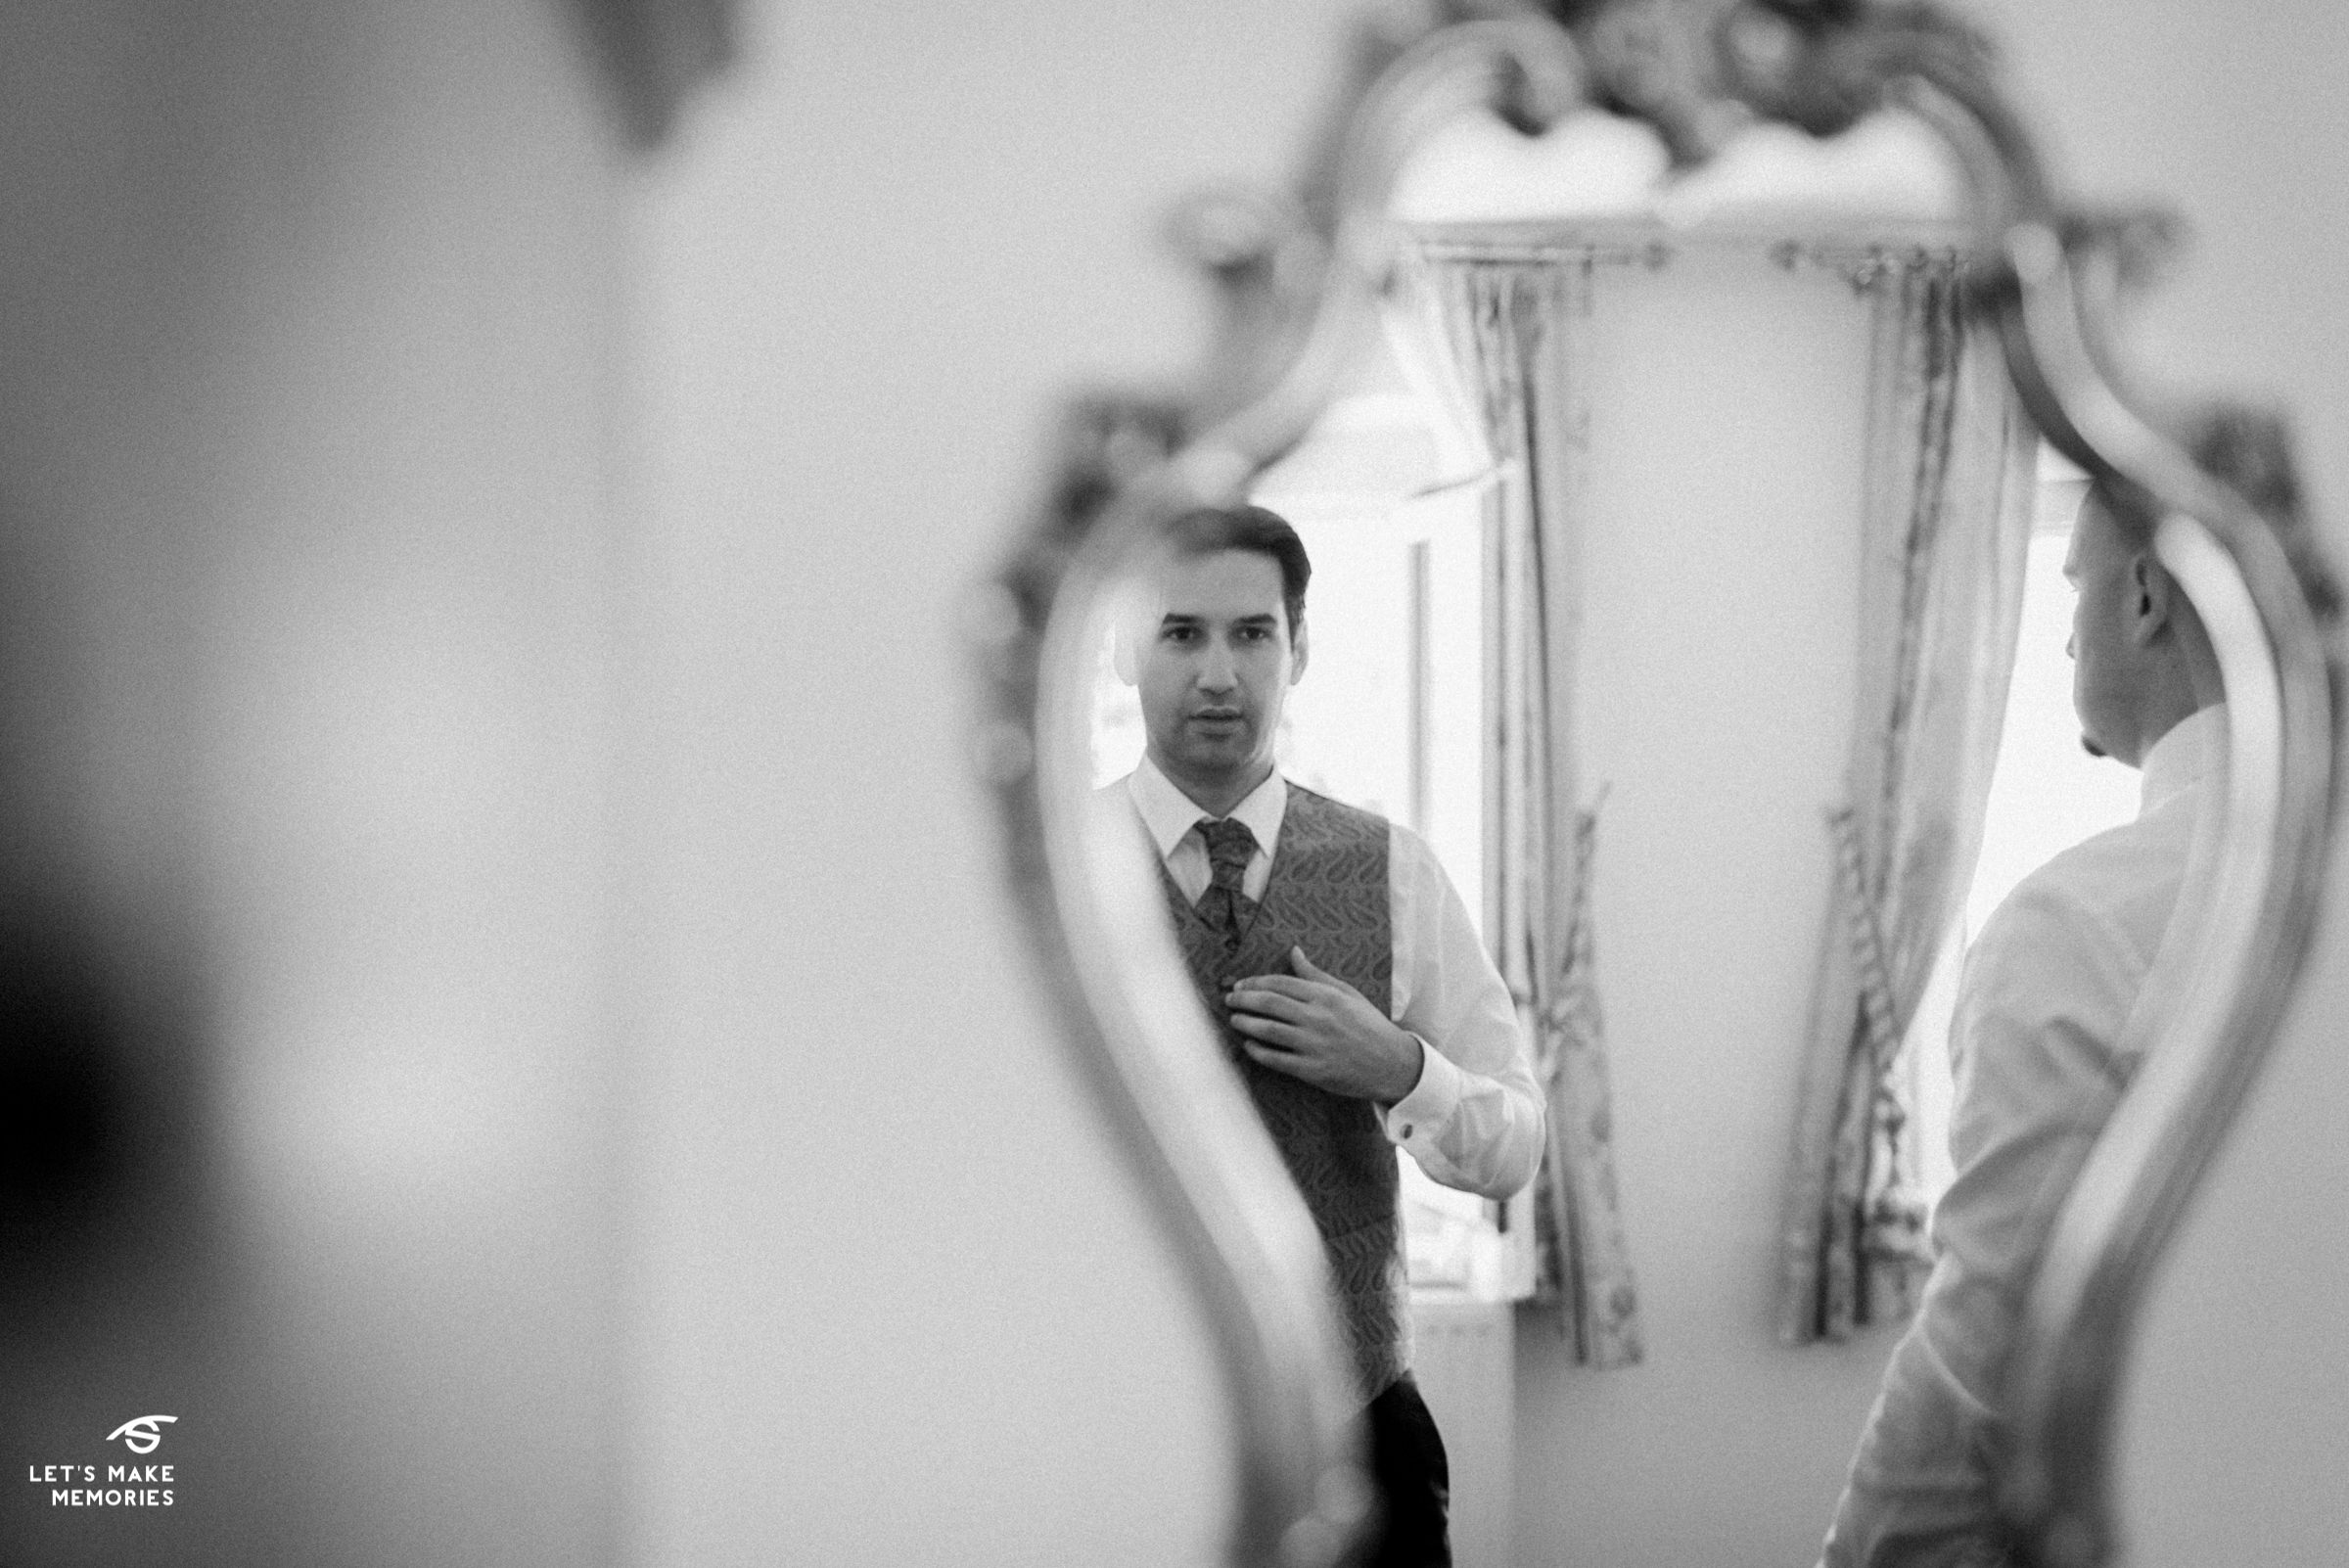 groom looking at himself in a mirror